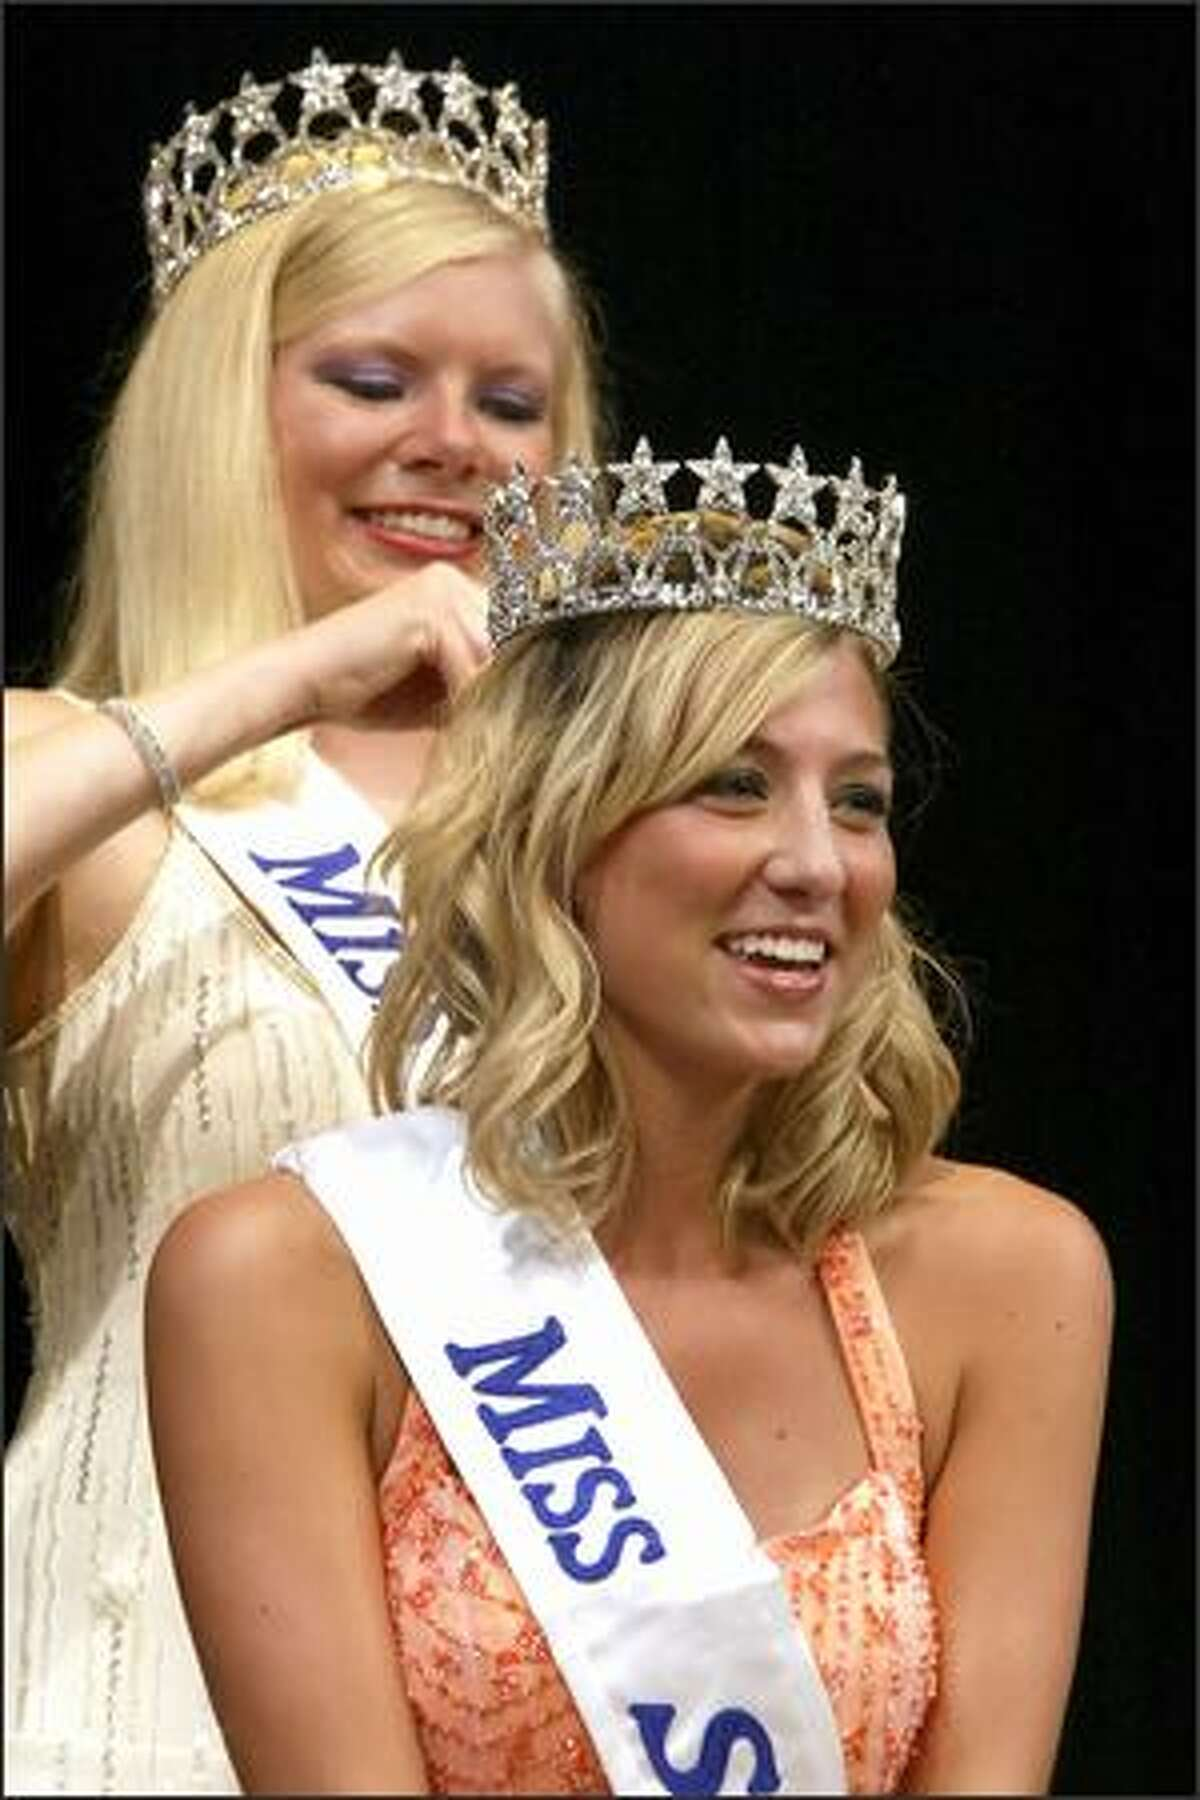 New Miss Seafair Erin Waid, front, is all smiles as she is crowned by former Seafair Queen Melissa Parks during the Coronation Tuesday in Seattle.